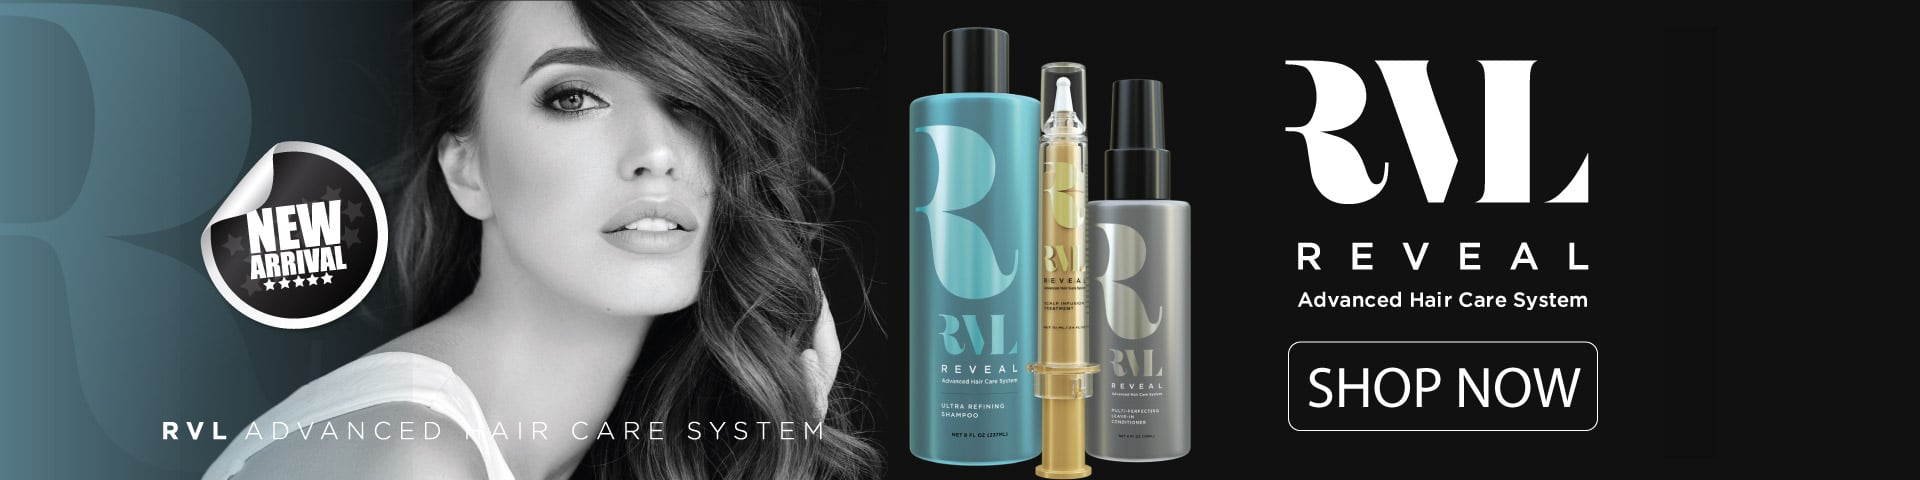 RVL by Jeunesse, Advanced Hair Care System, Grow Thicker Fuller Hair, Stem Cell Shampoo